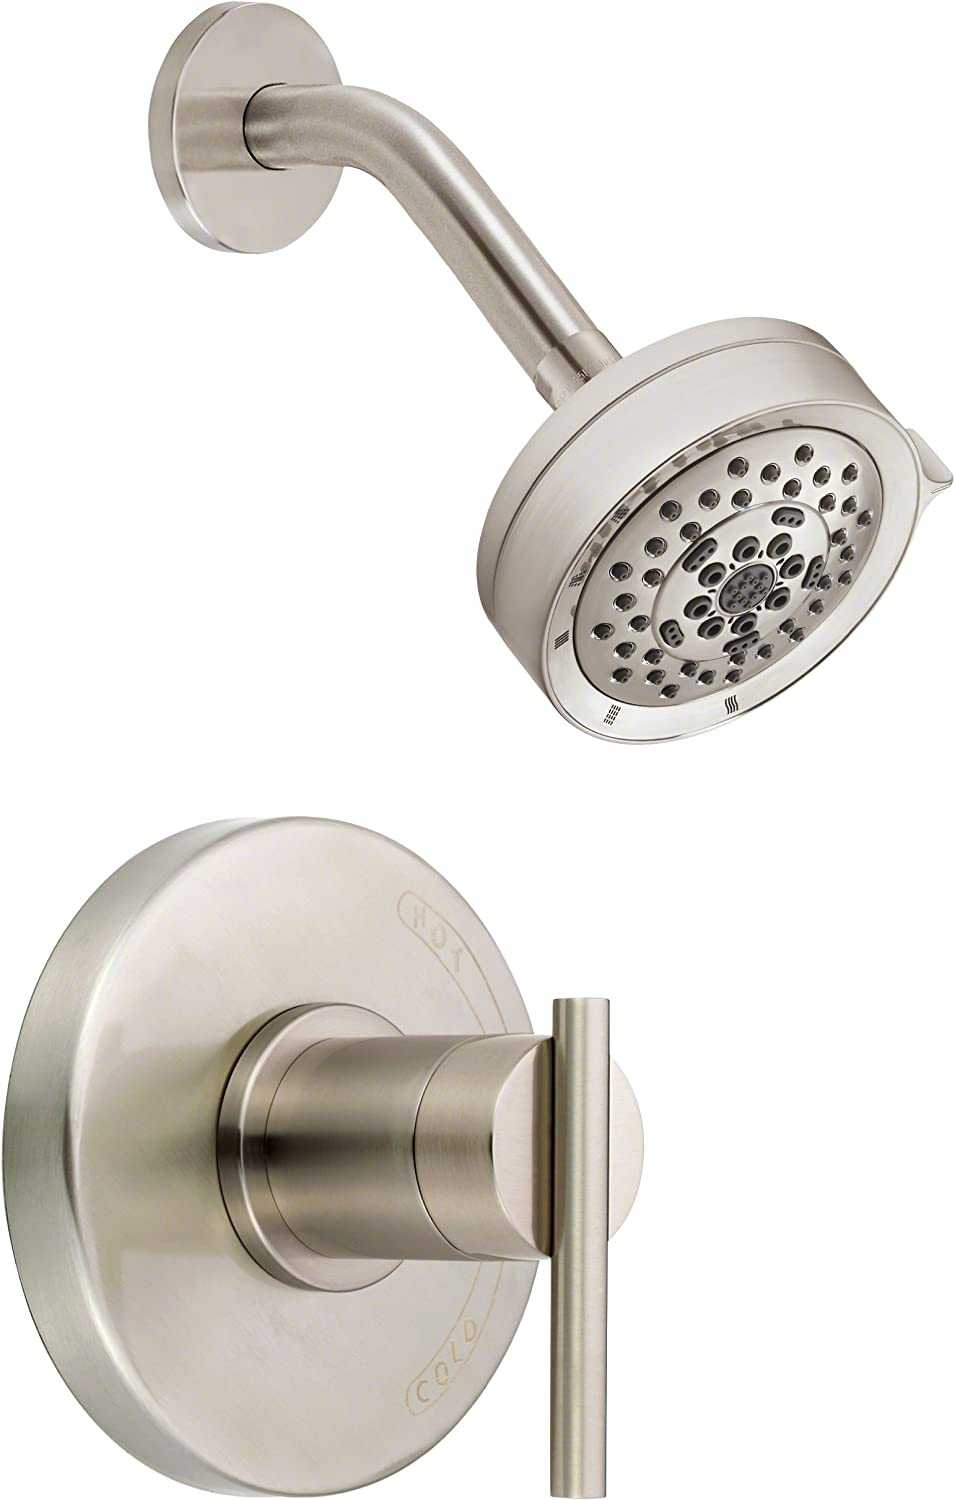 Danze D510558BNT Parma Single Handle Shower Trim Kit with 5-Function Showerhead, Brushed Nickel